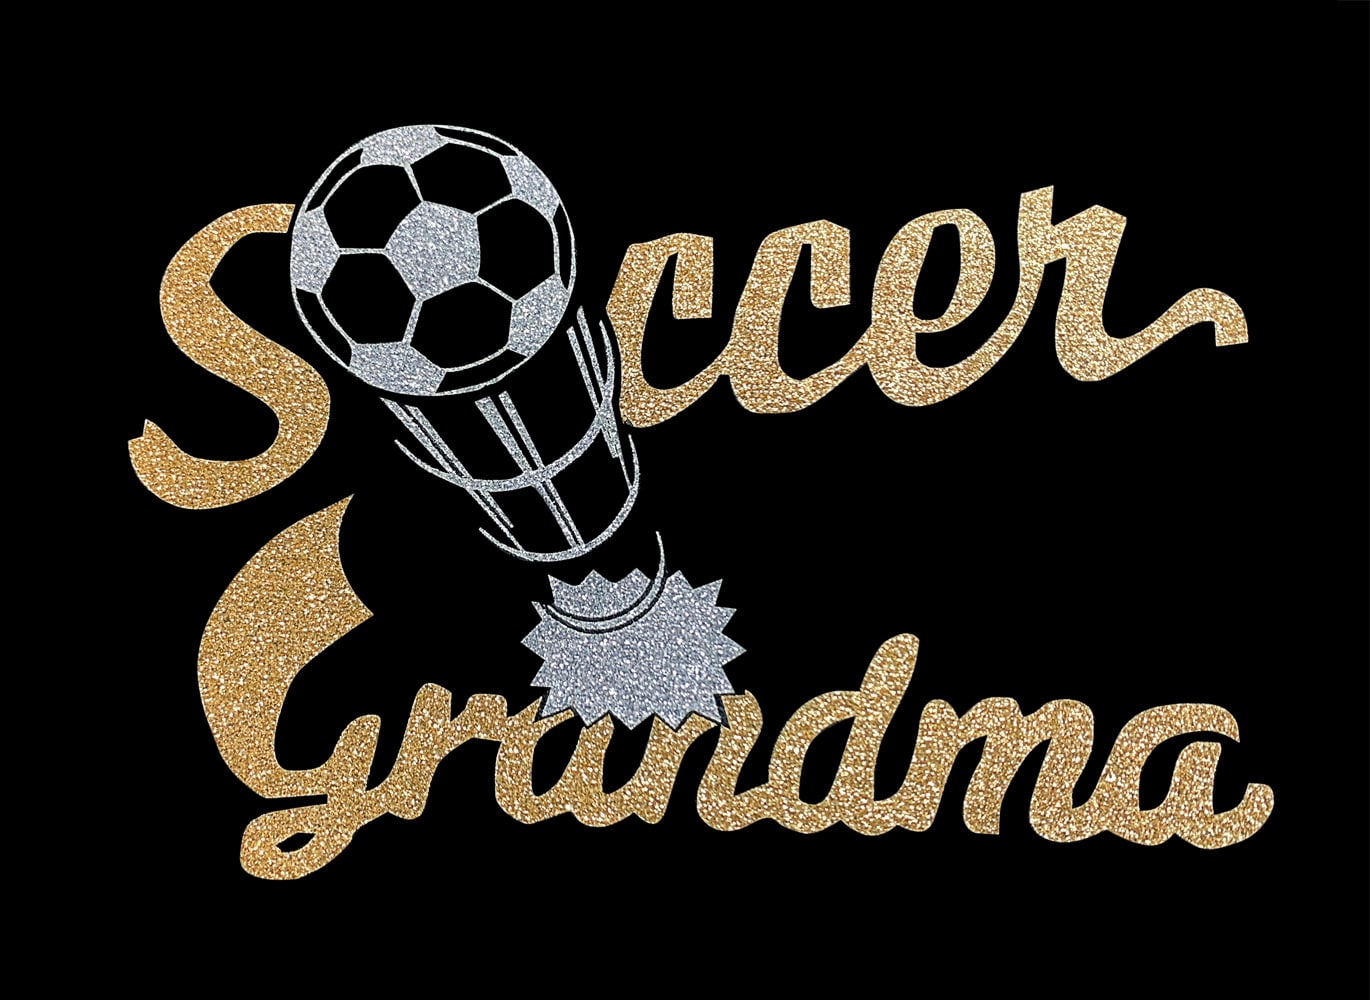 Image of Soccer Grandma HTV Glitter Design By TwillUSA